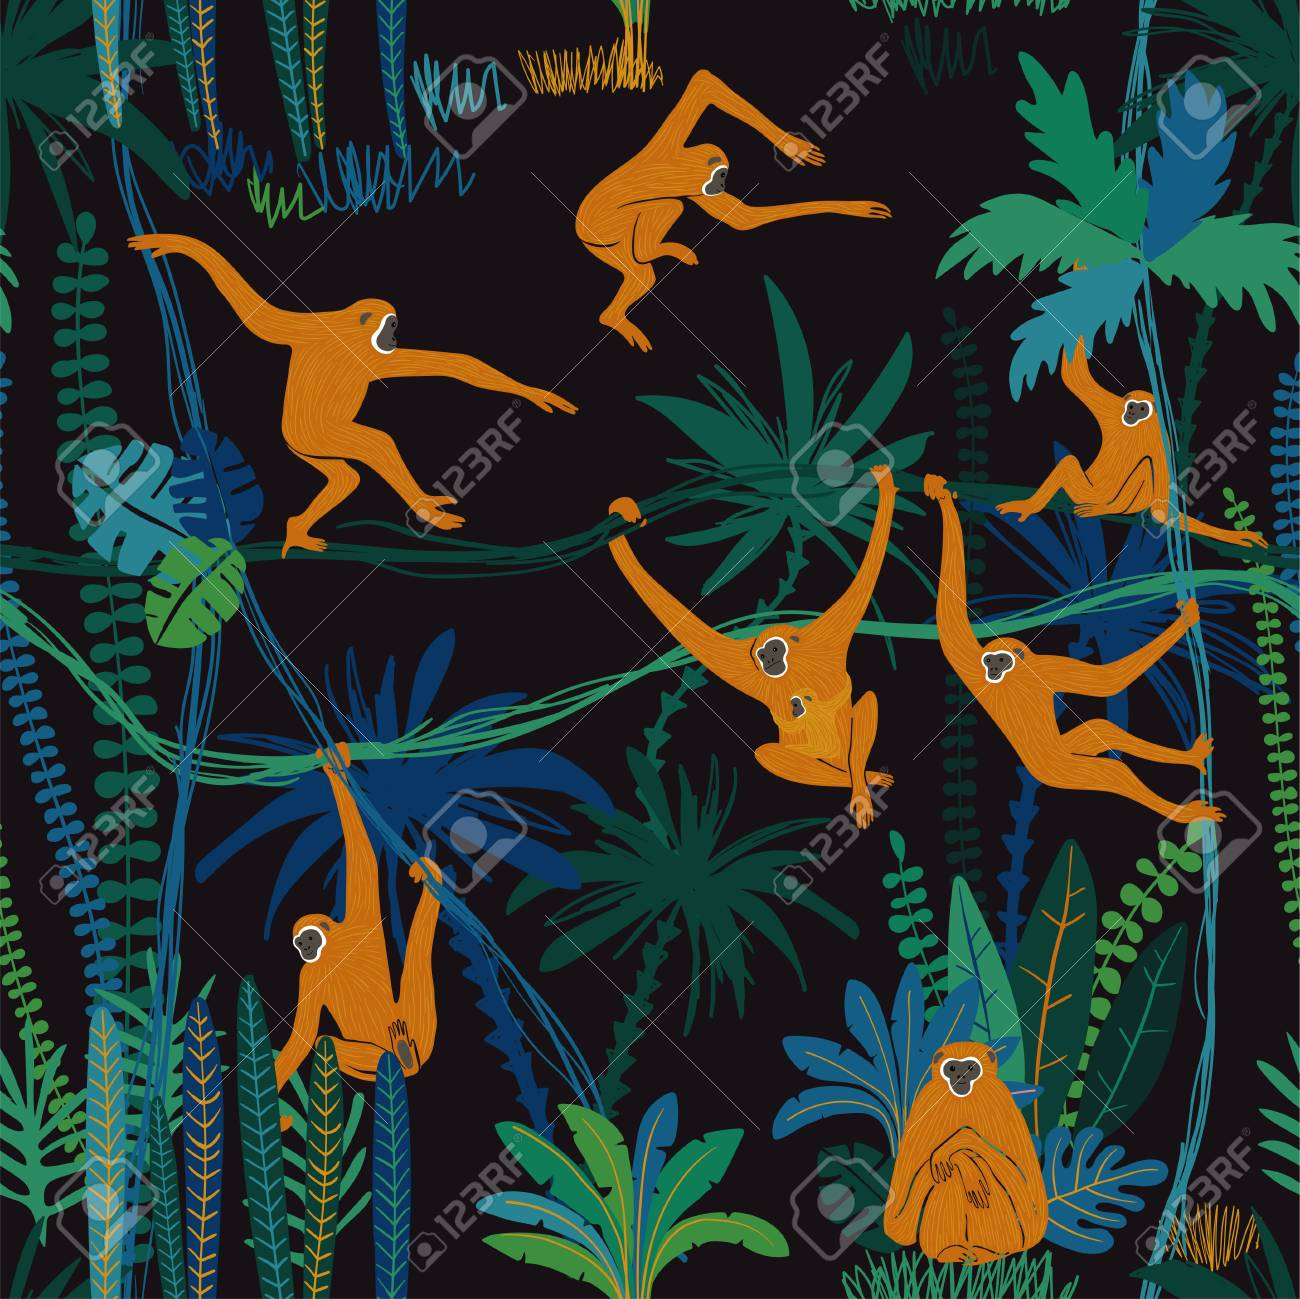 Colorful wildlife animals print. Seamless pattern with funny gibbon monkey in wild jungle forest. - 118439245